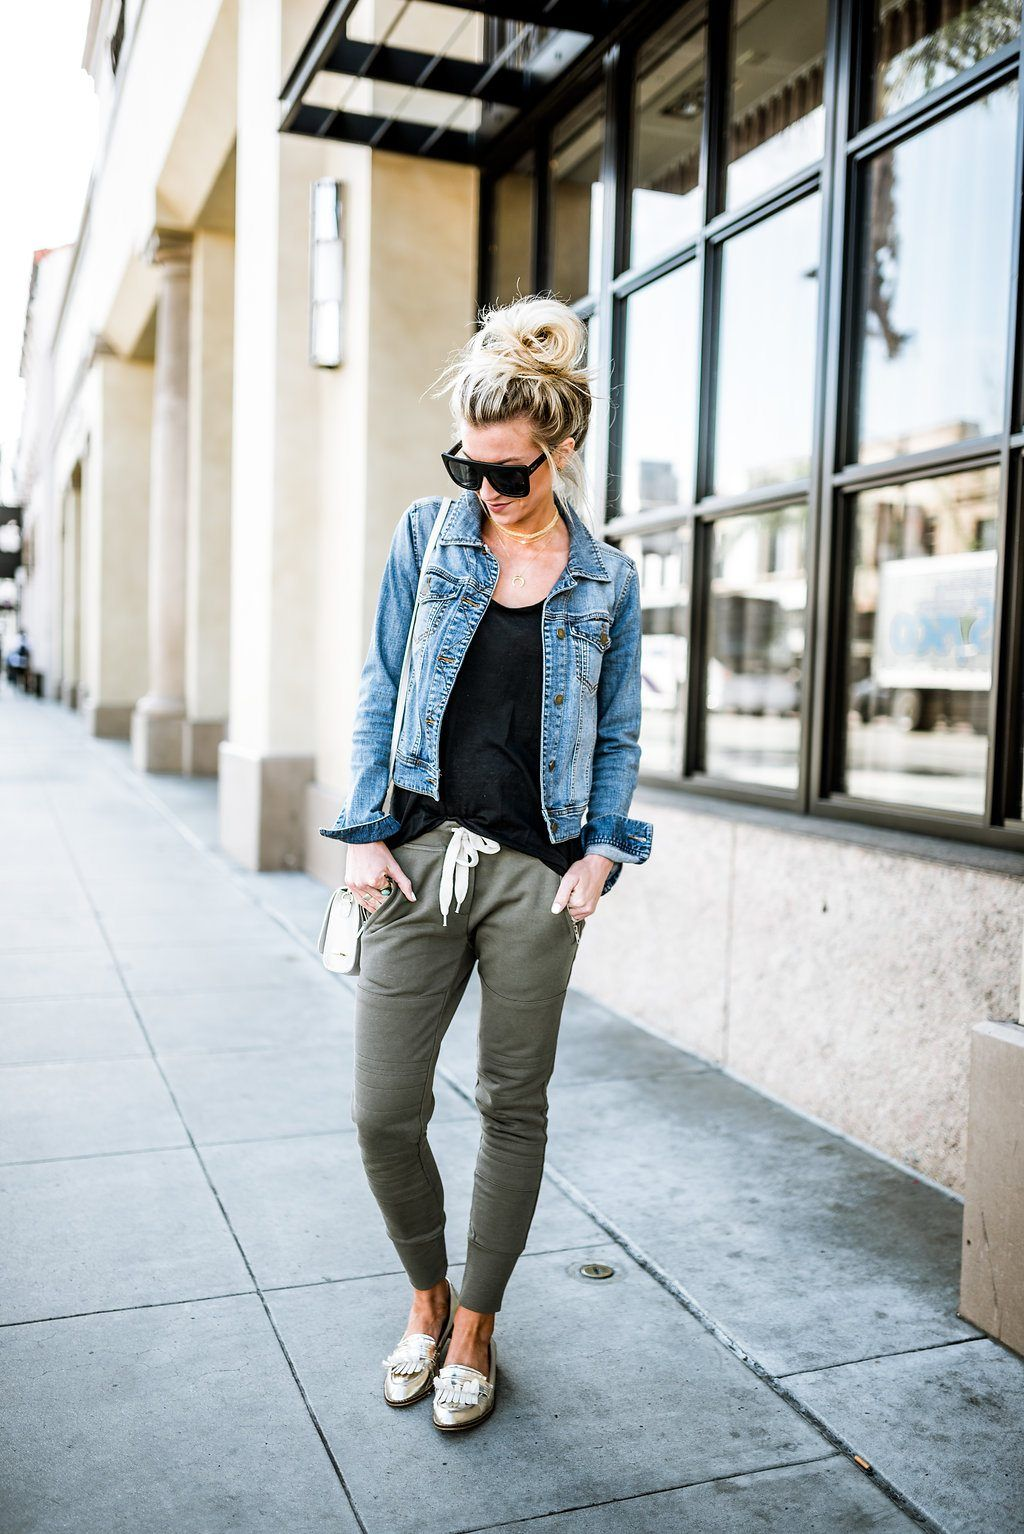 THREE TIPS FOR STYLING JOGGERS - Elle Apparel by Leanne Barlow